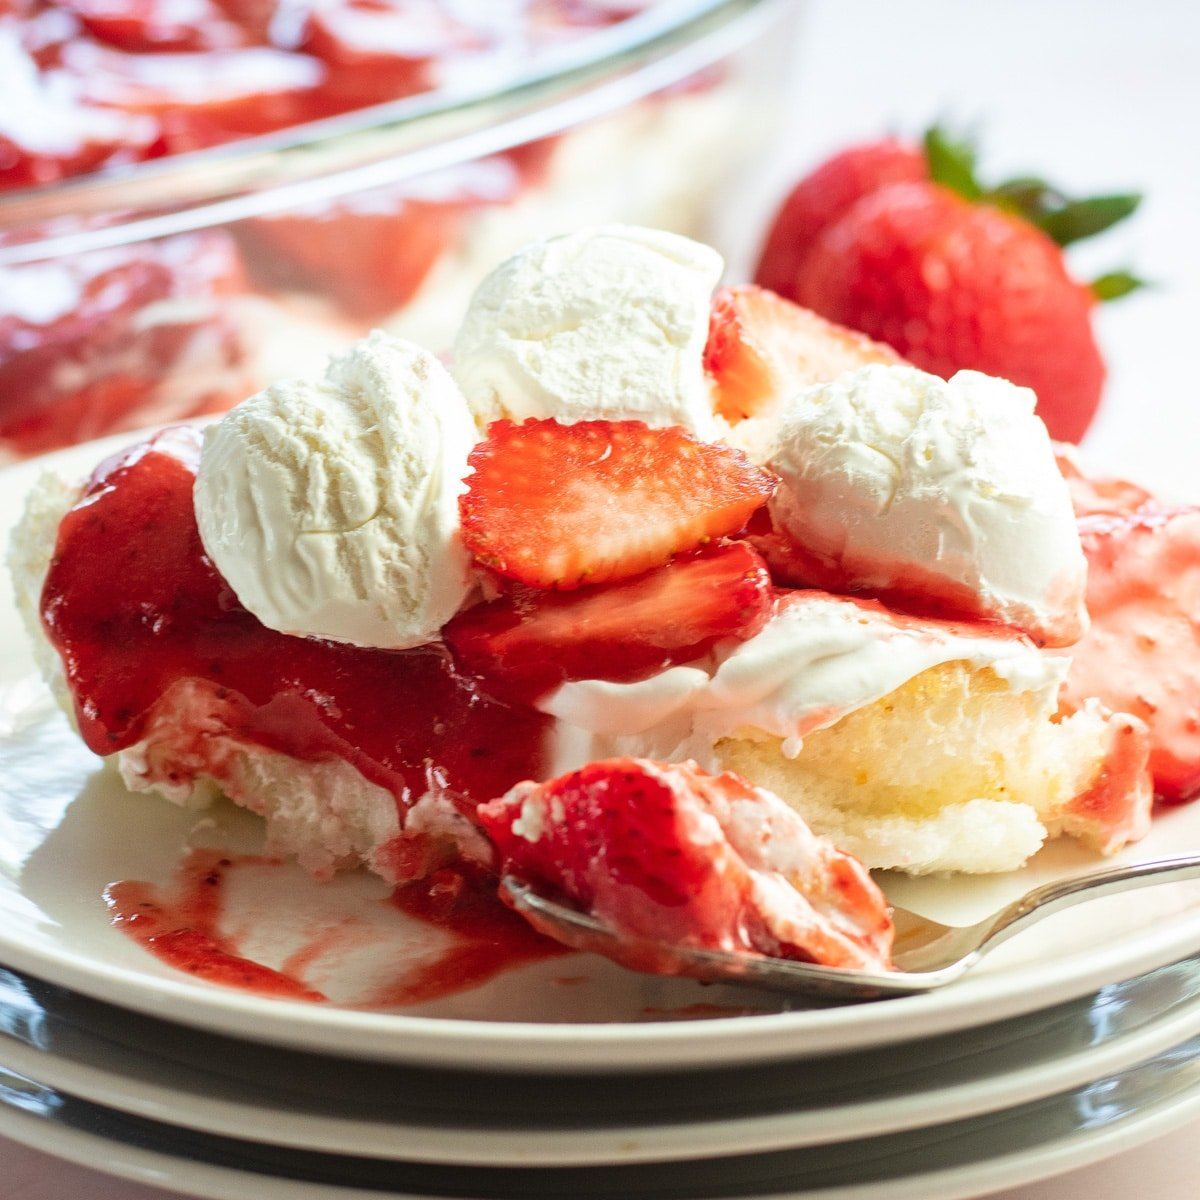 Strawberry angel food lush served on white plate with whipped cream and berries in background.